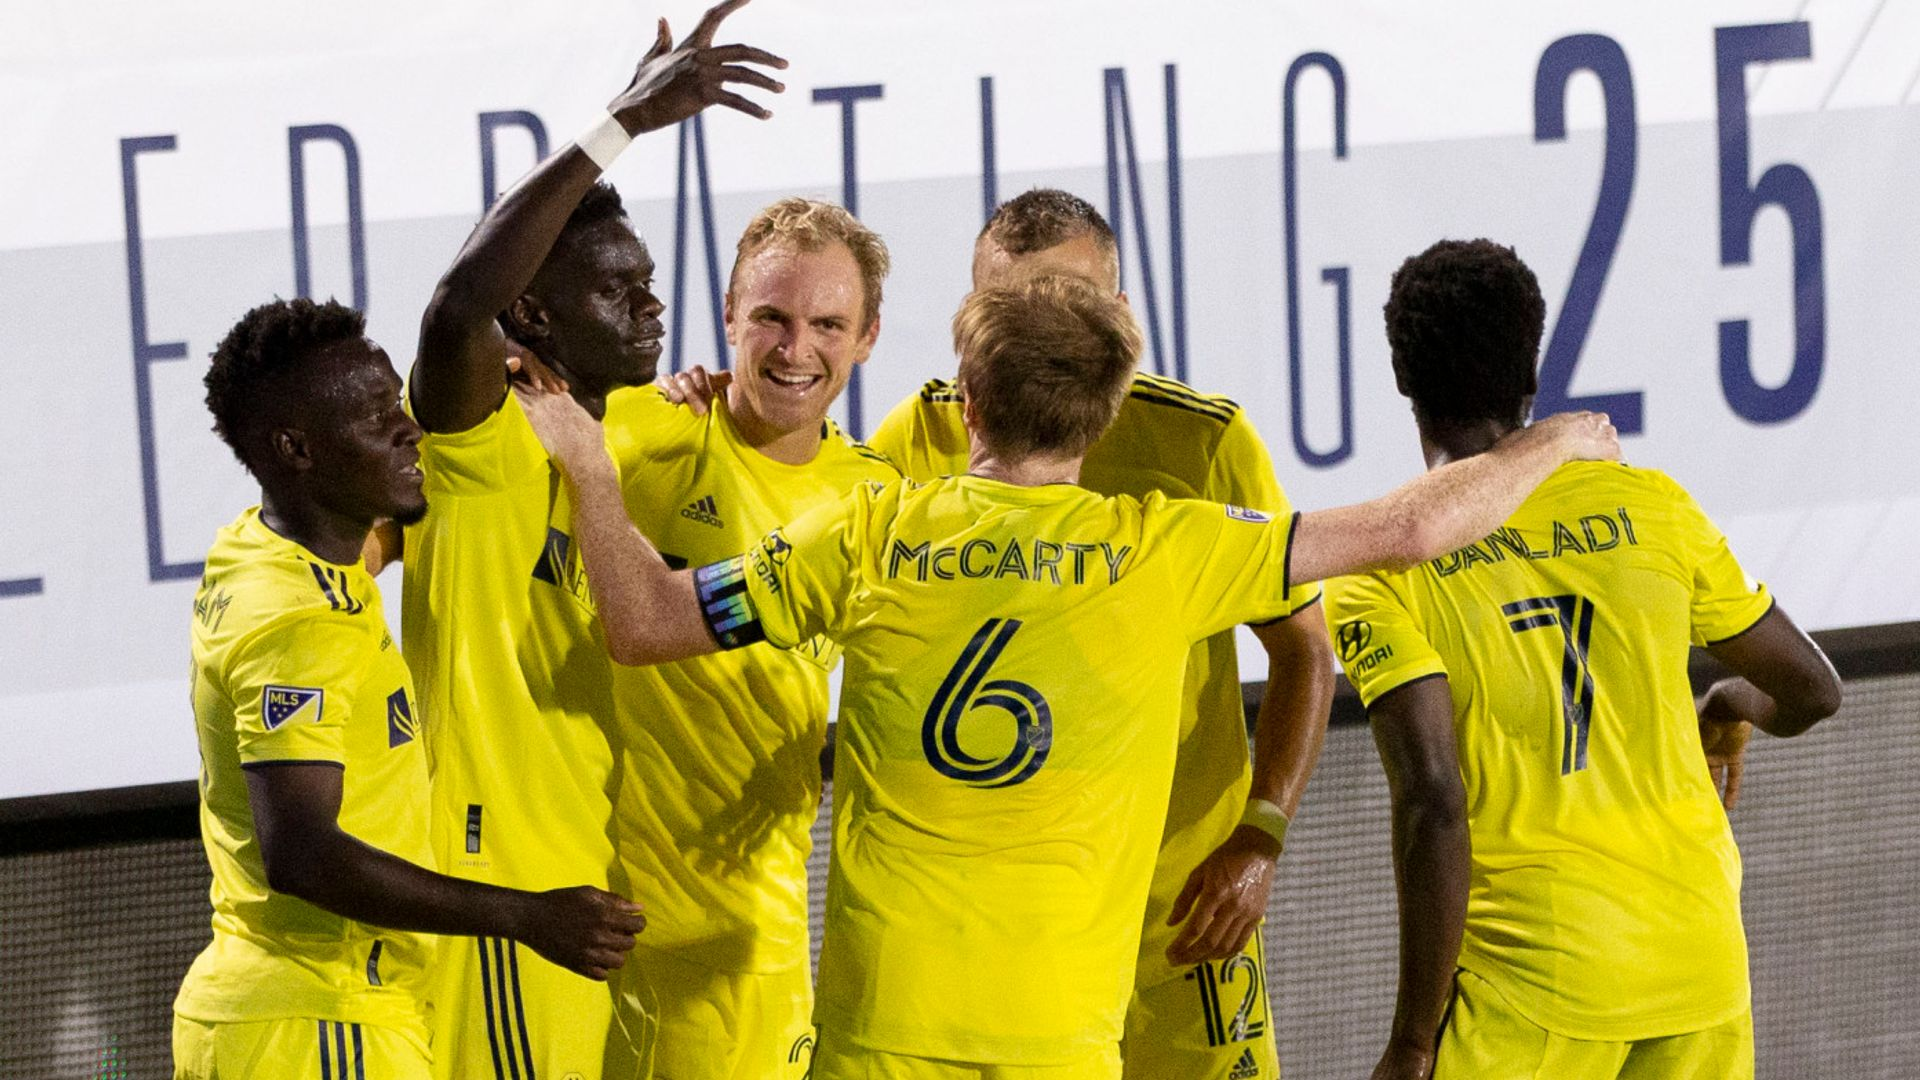 Nashville claim historic first MLS win